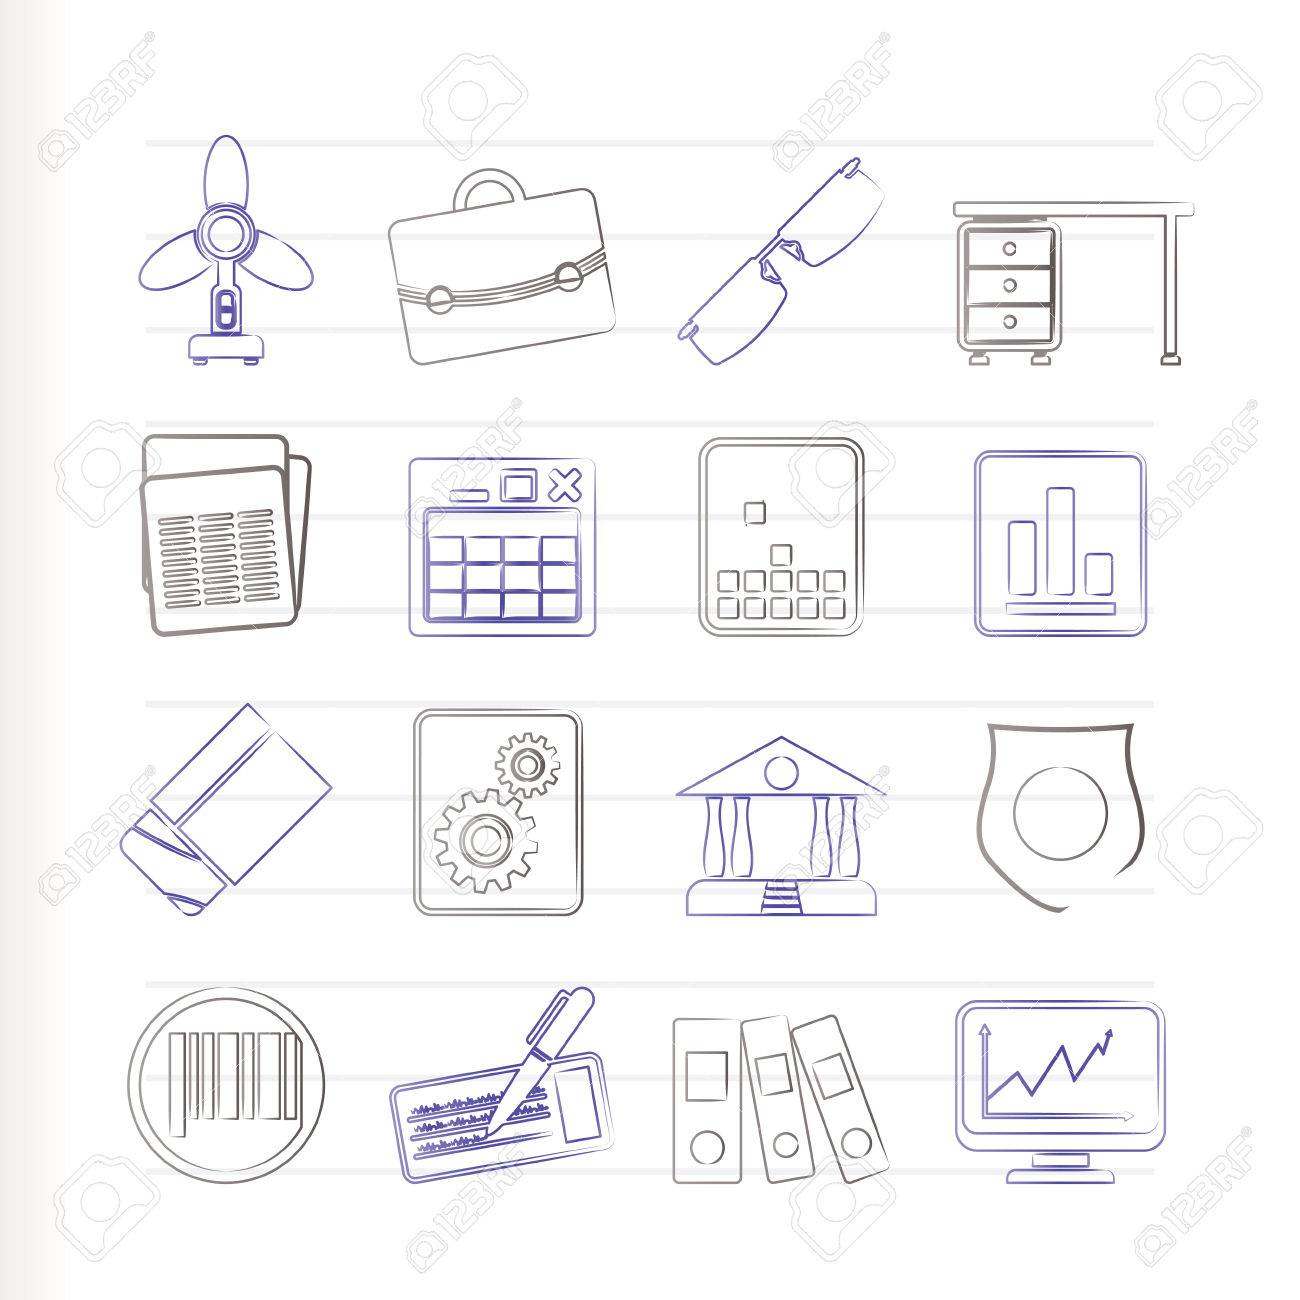 Business and Office Icons Stock Vector - 7701552